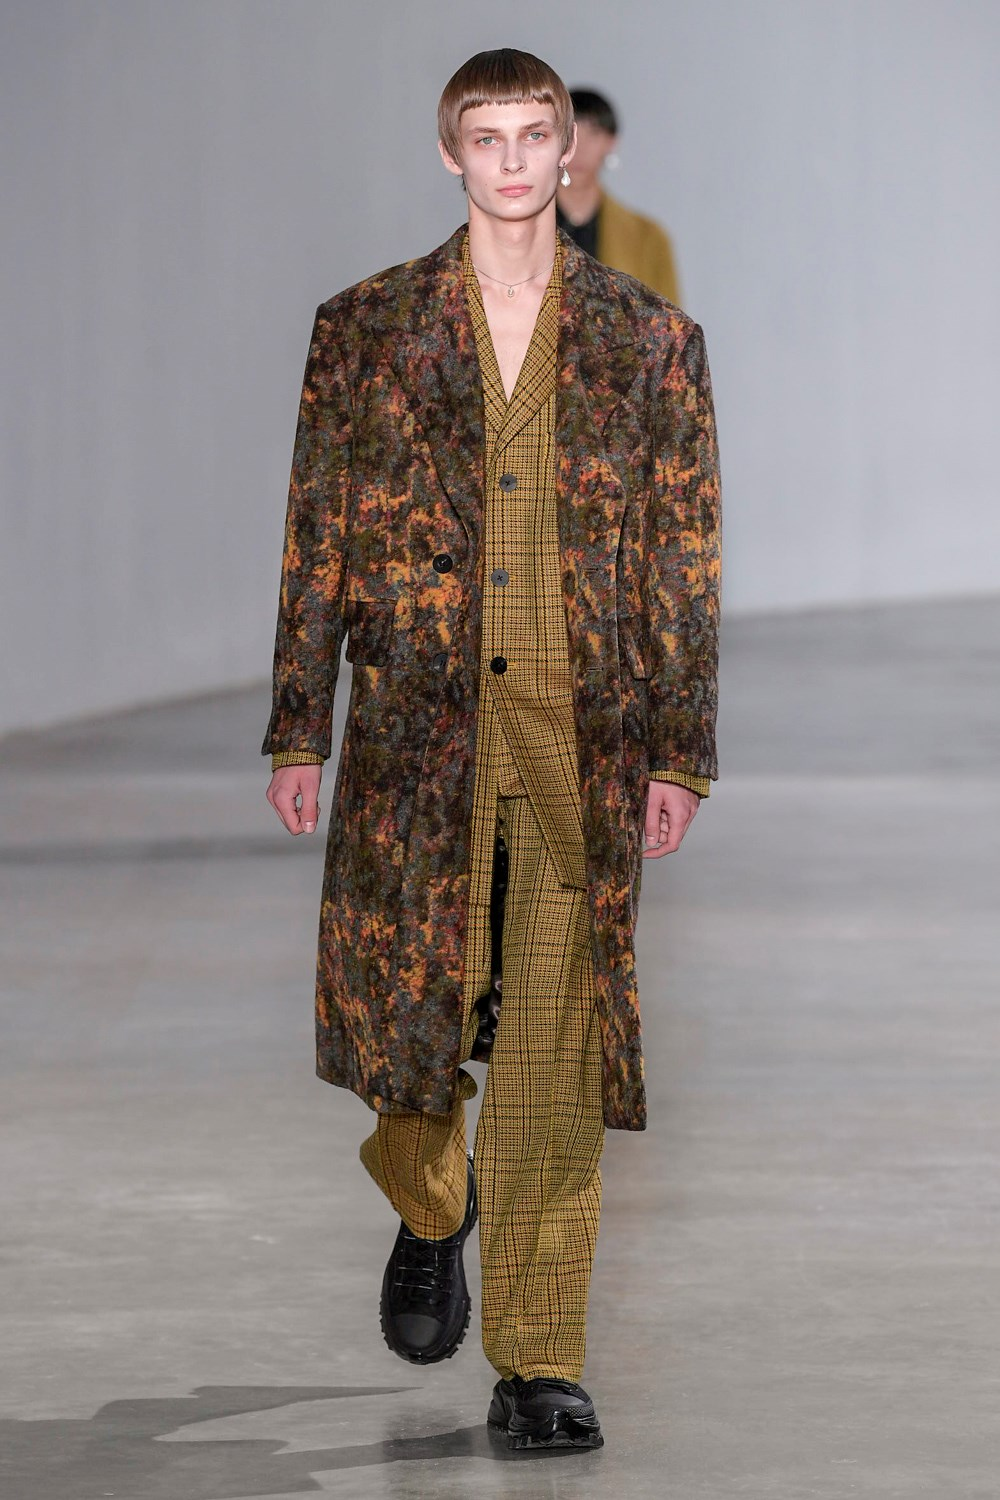 Top 10 'Other' Fall 2020 Men's Fashion Shows